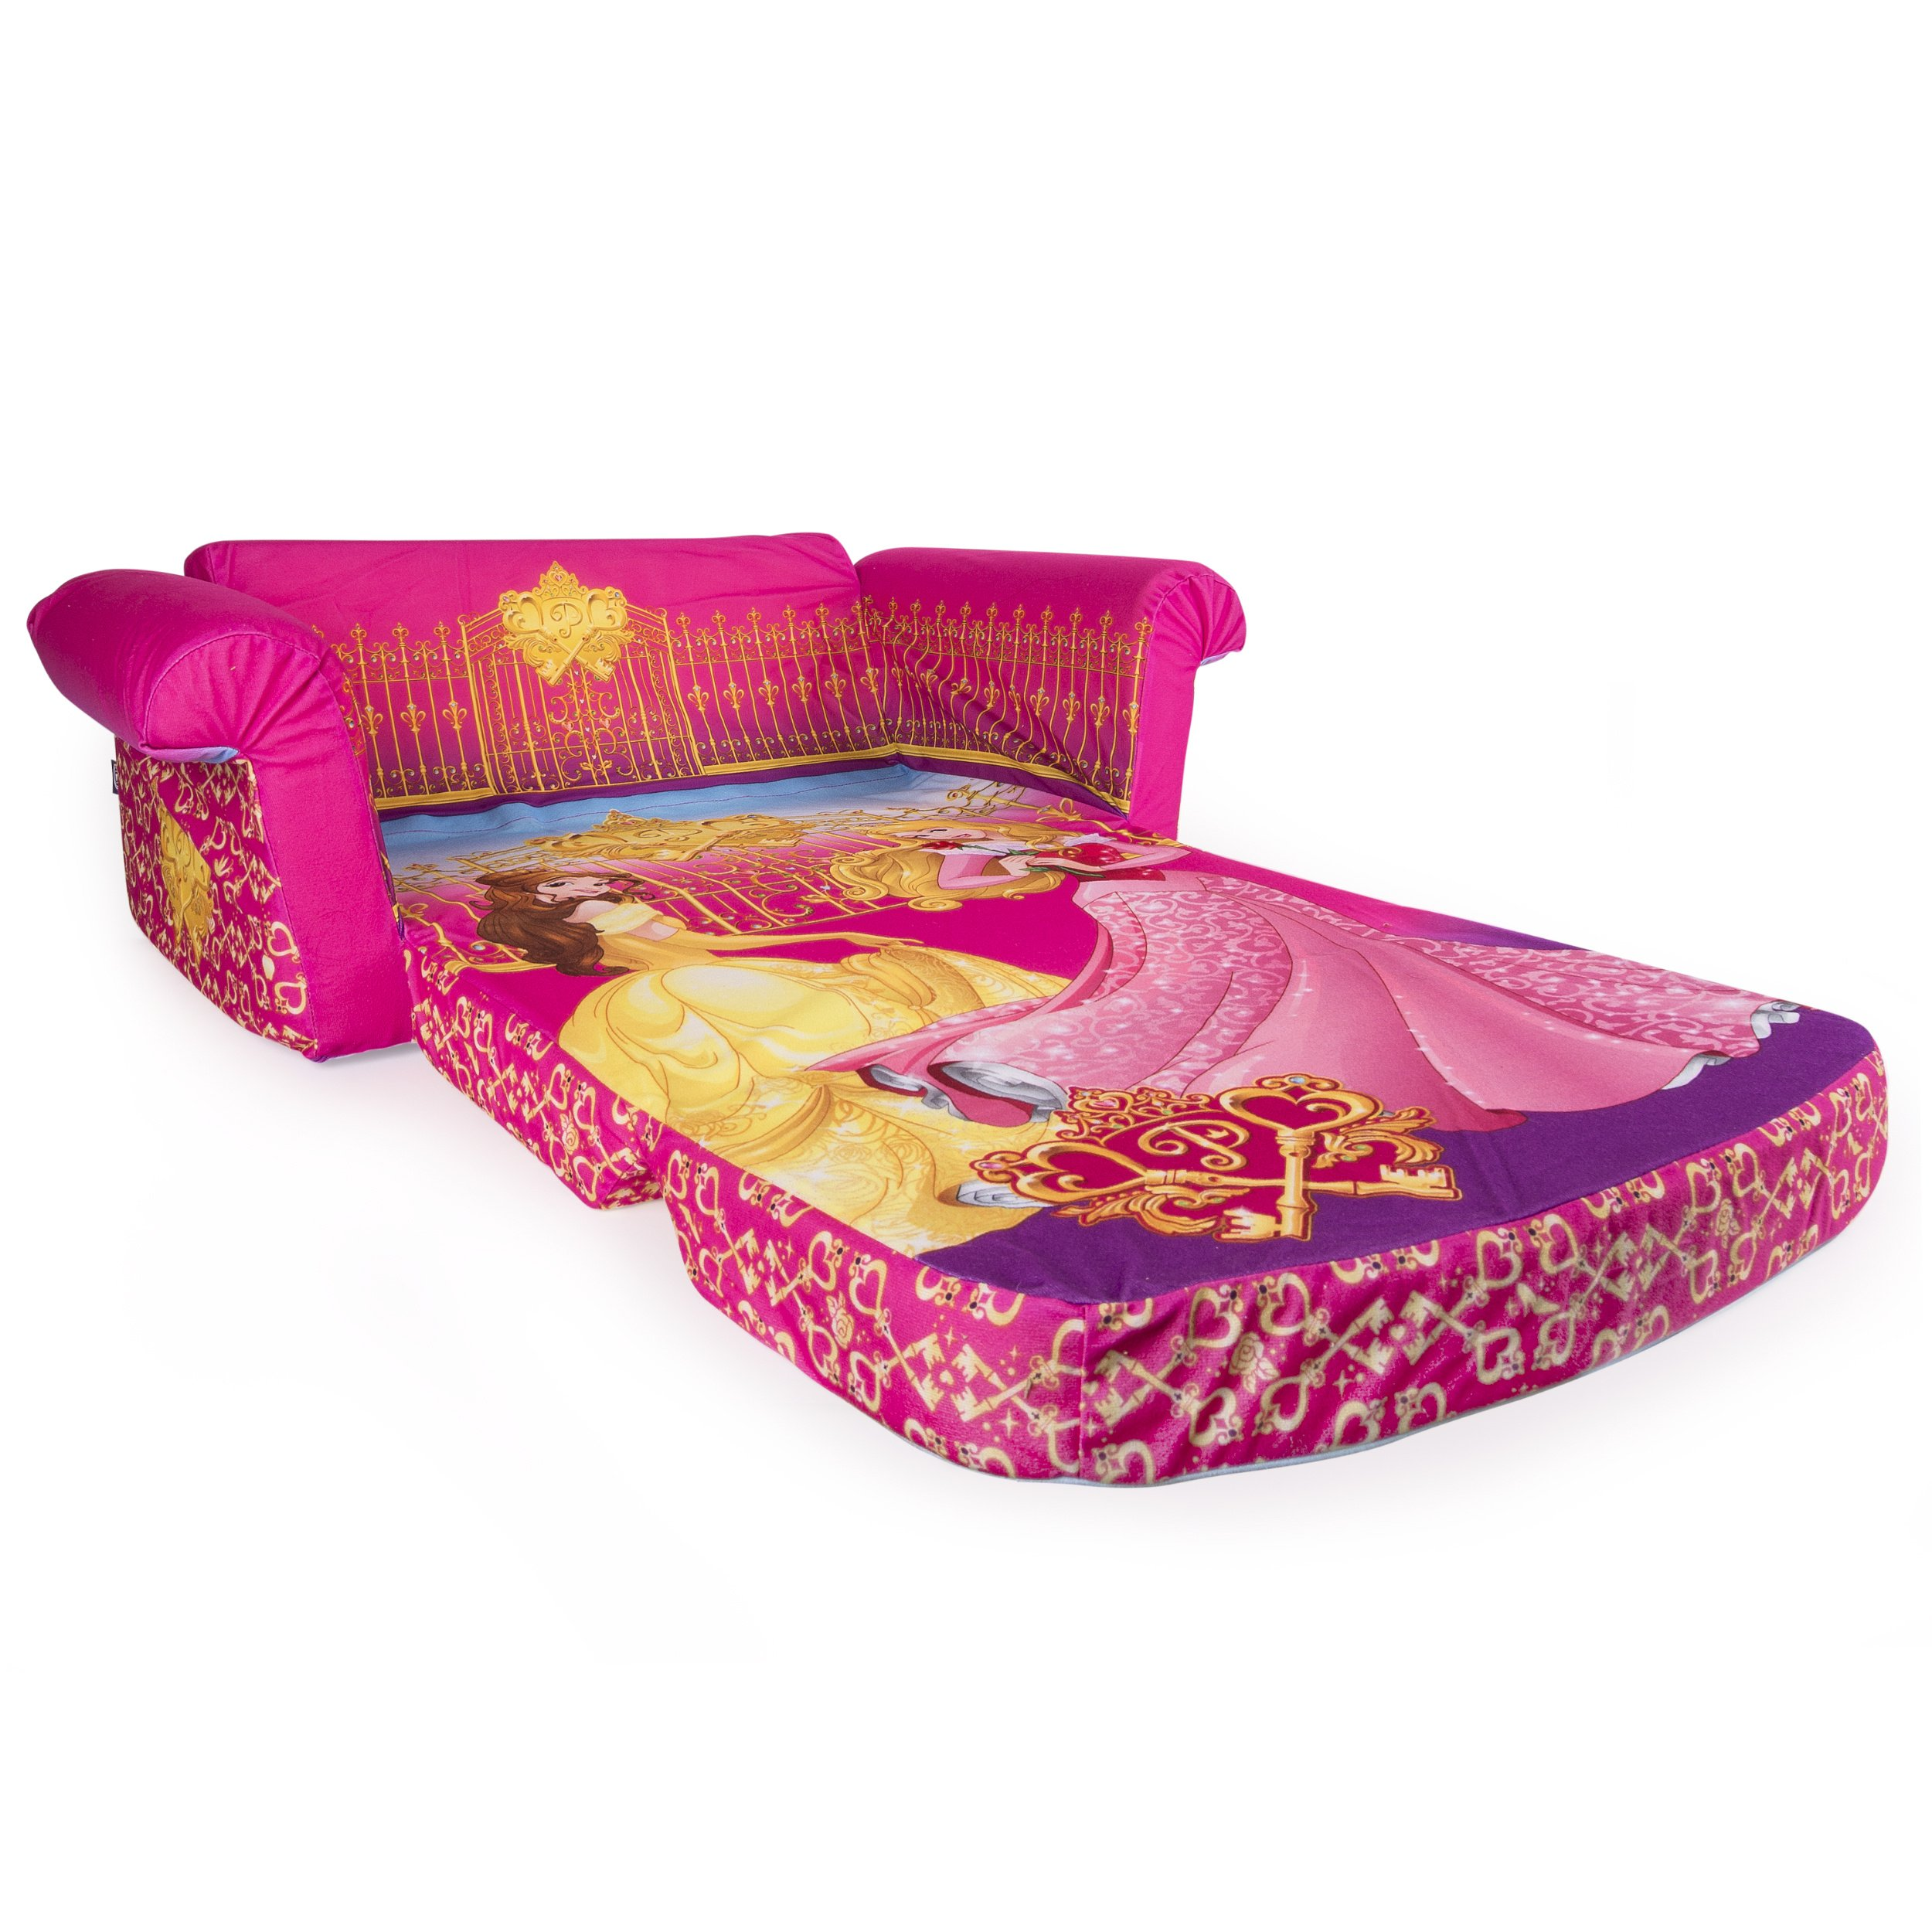 Marshmallow Furniture, Children's 2 in 1 Flip Open Foam Sofa, Disney Princess, by Spin Master by Marshmallow Furniture (Image #3)